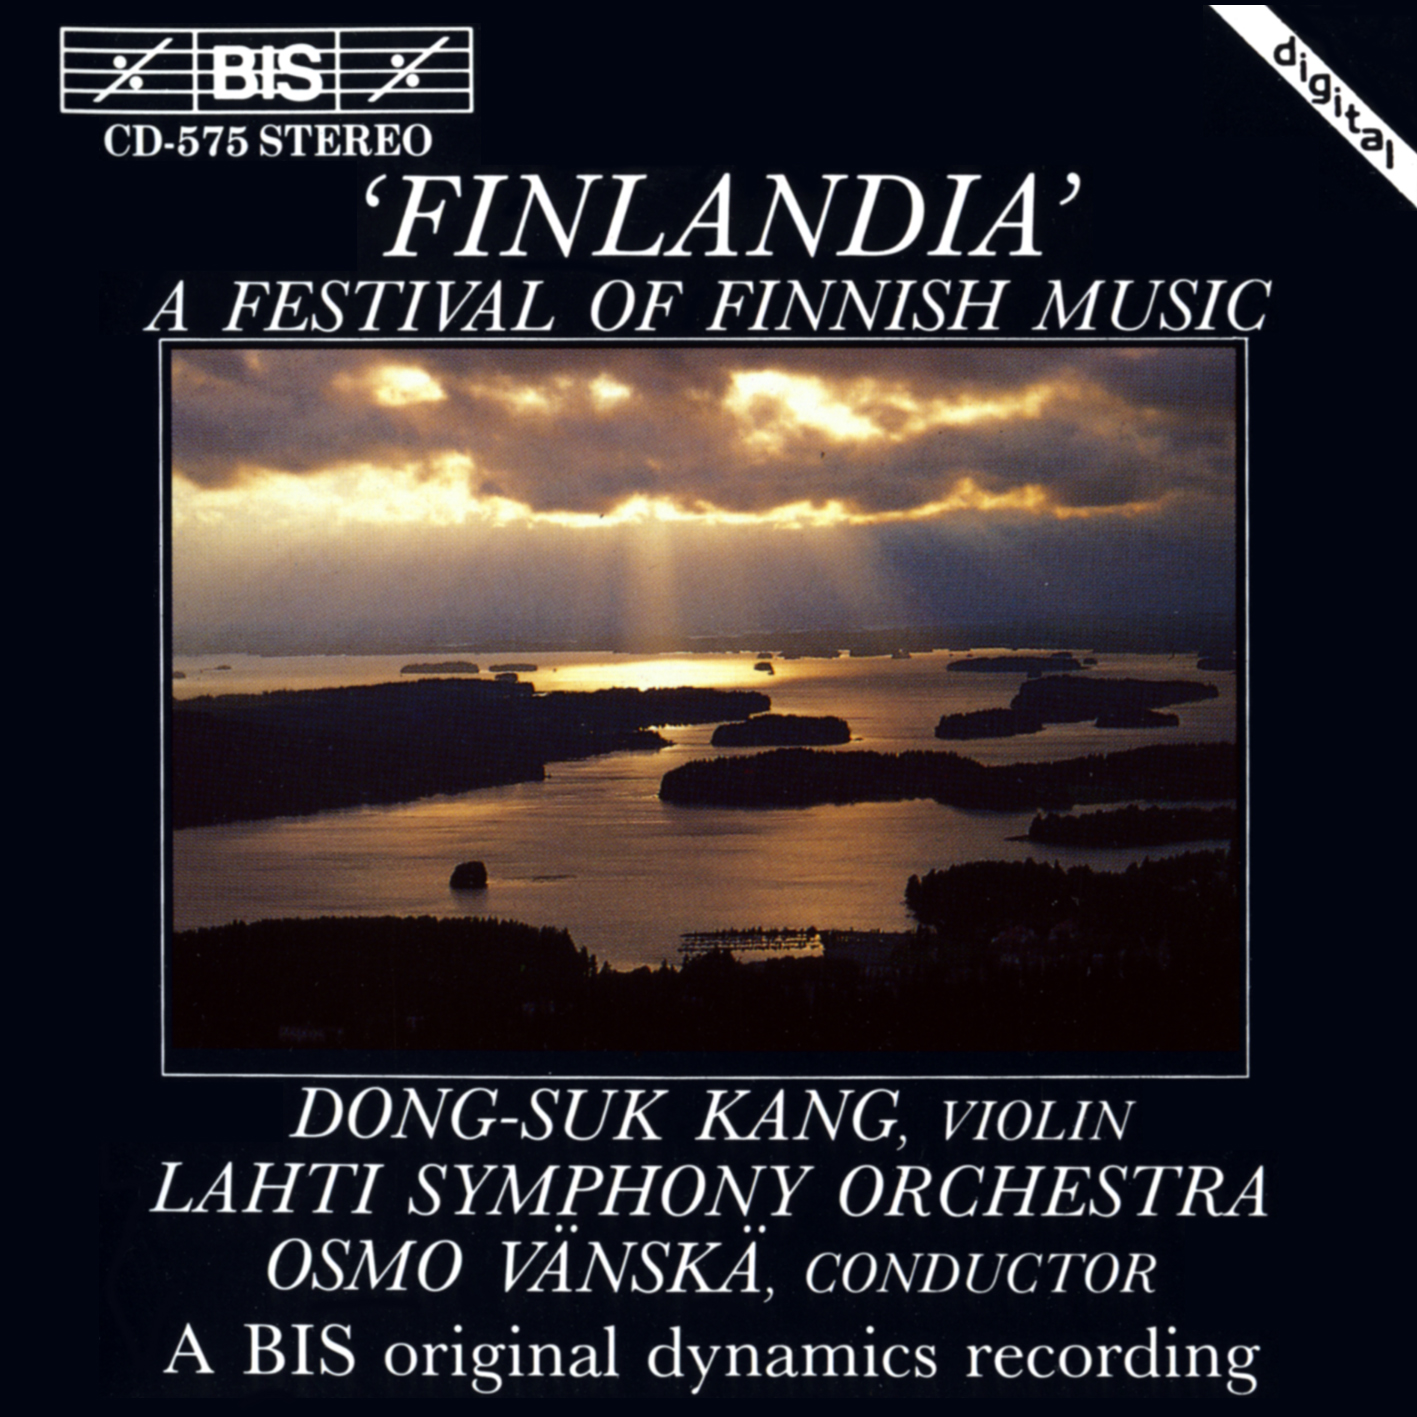 Finlandia – a Festival of Finnish Music